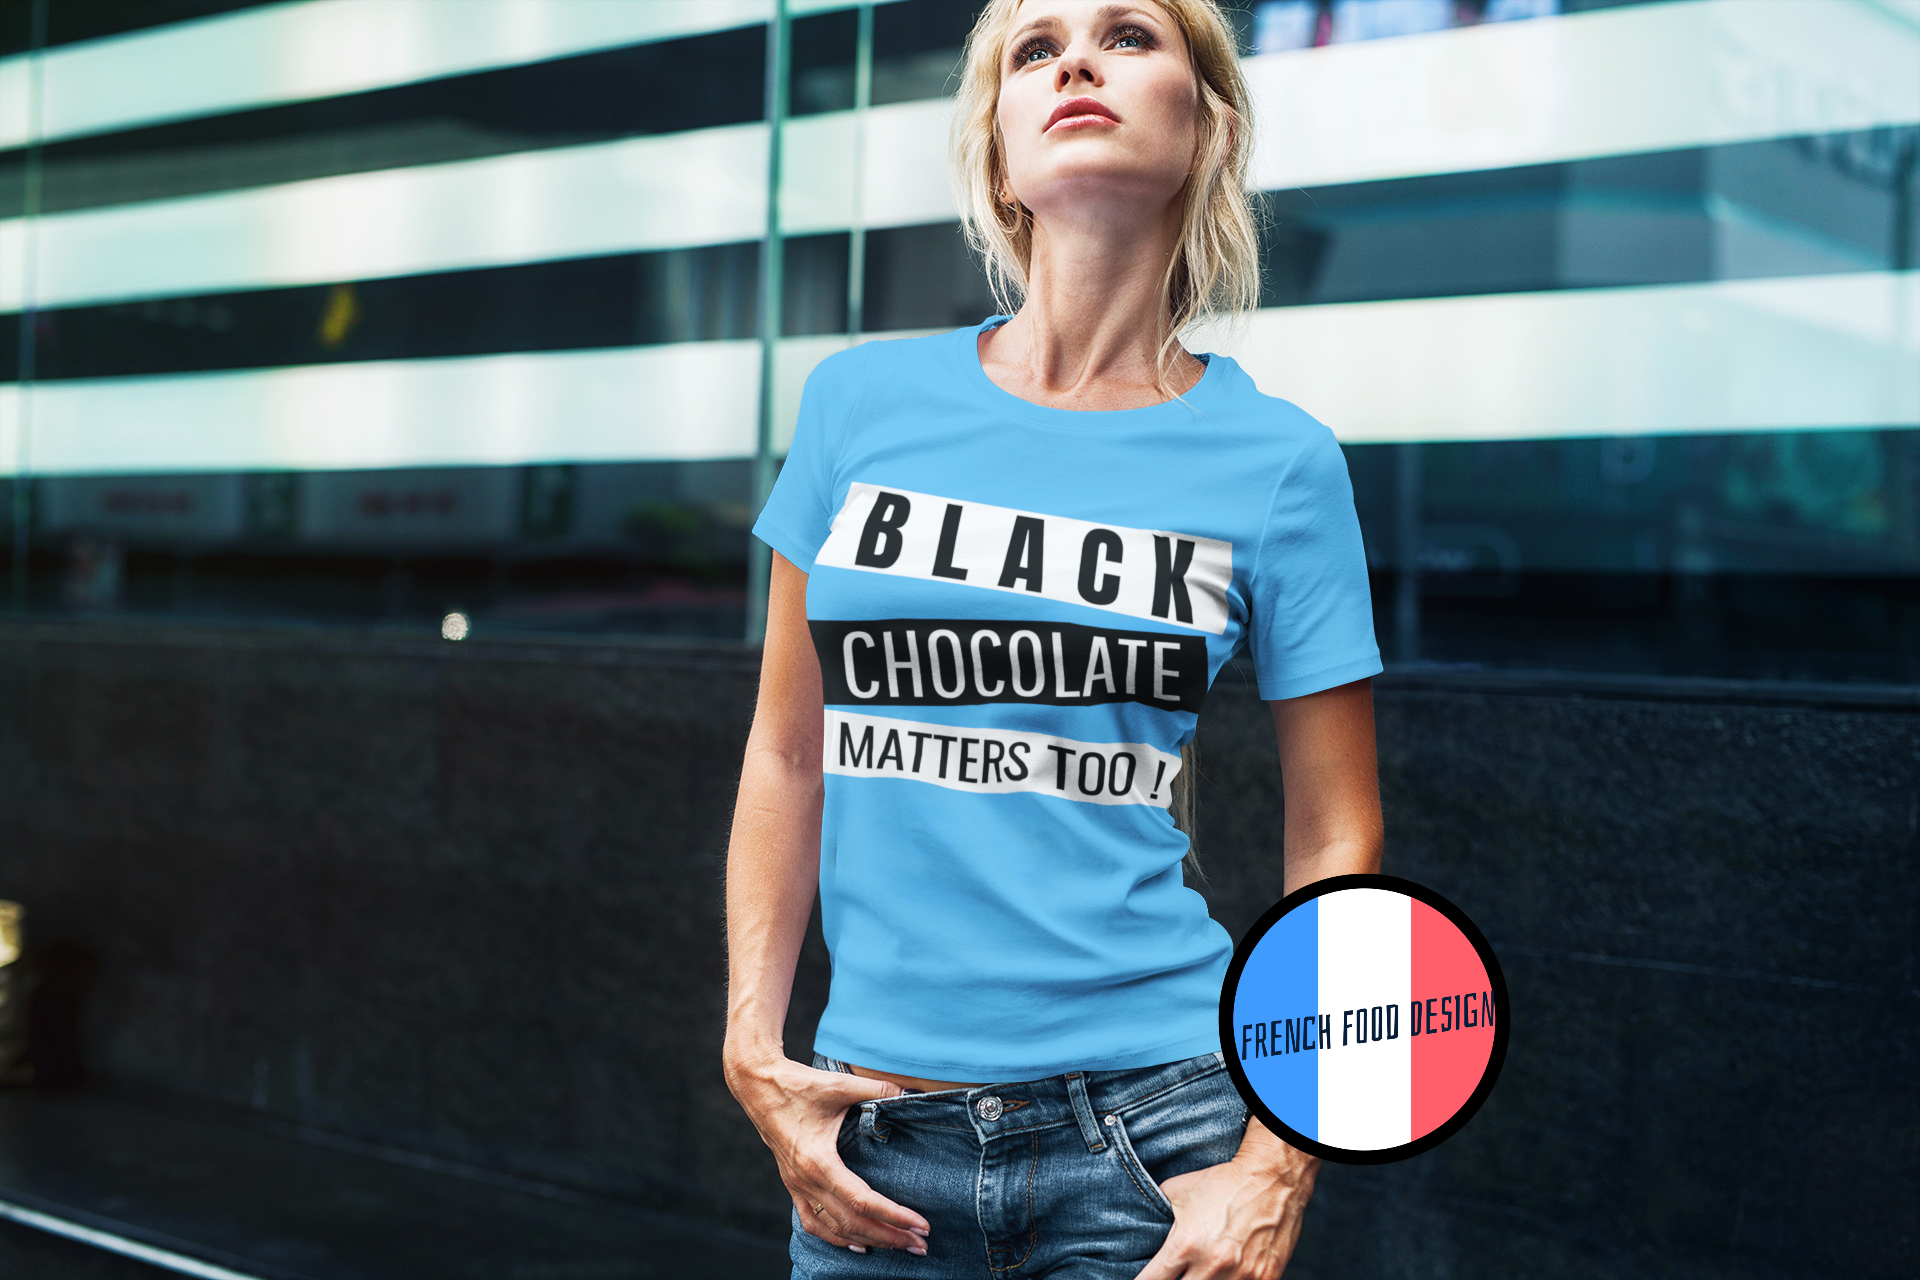 Happy Sister Day 😎 !⁠ ⁠ Not sure what to choose? 🤷‍♀️ Click on the link to find many shirts 👕designed by passionates. .⁠ .⁠ .⁠ . .⁠ .⁠ .⁠ .⁠ #Food #Foodphotography #Foodstagram #Foodinsta #Foodie #Foodpics #Foodlover #Foodinspiration #Foodpassion #Frenchfood #Chocolate #BlackMatters #Blackchocolate #Darkchocolate #darkchocolatelover #milkchocolate #Choco #FunnyFood #Croissant #Baguette   #ParisFood #Swisschocolate #ilovechocolate #grillmaster #Frenchcuisine #Blacklove #Perfectgift